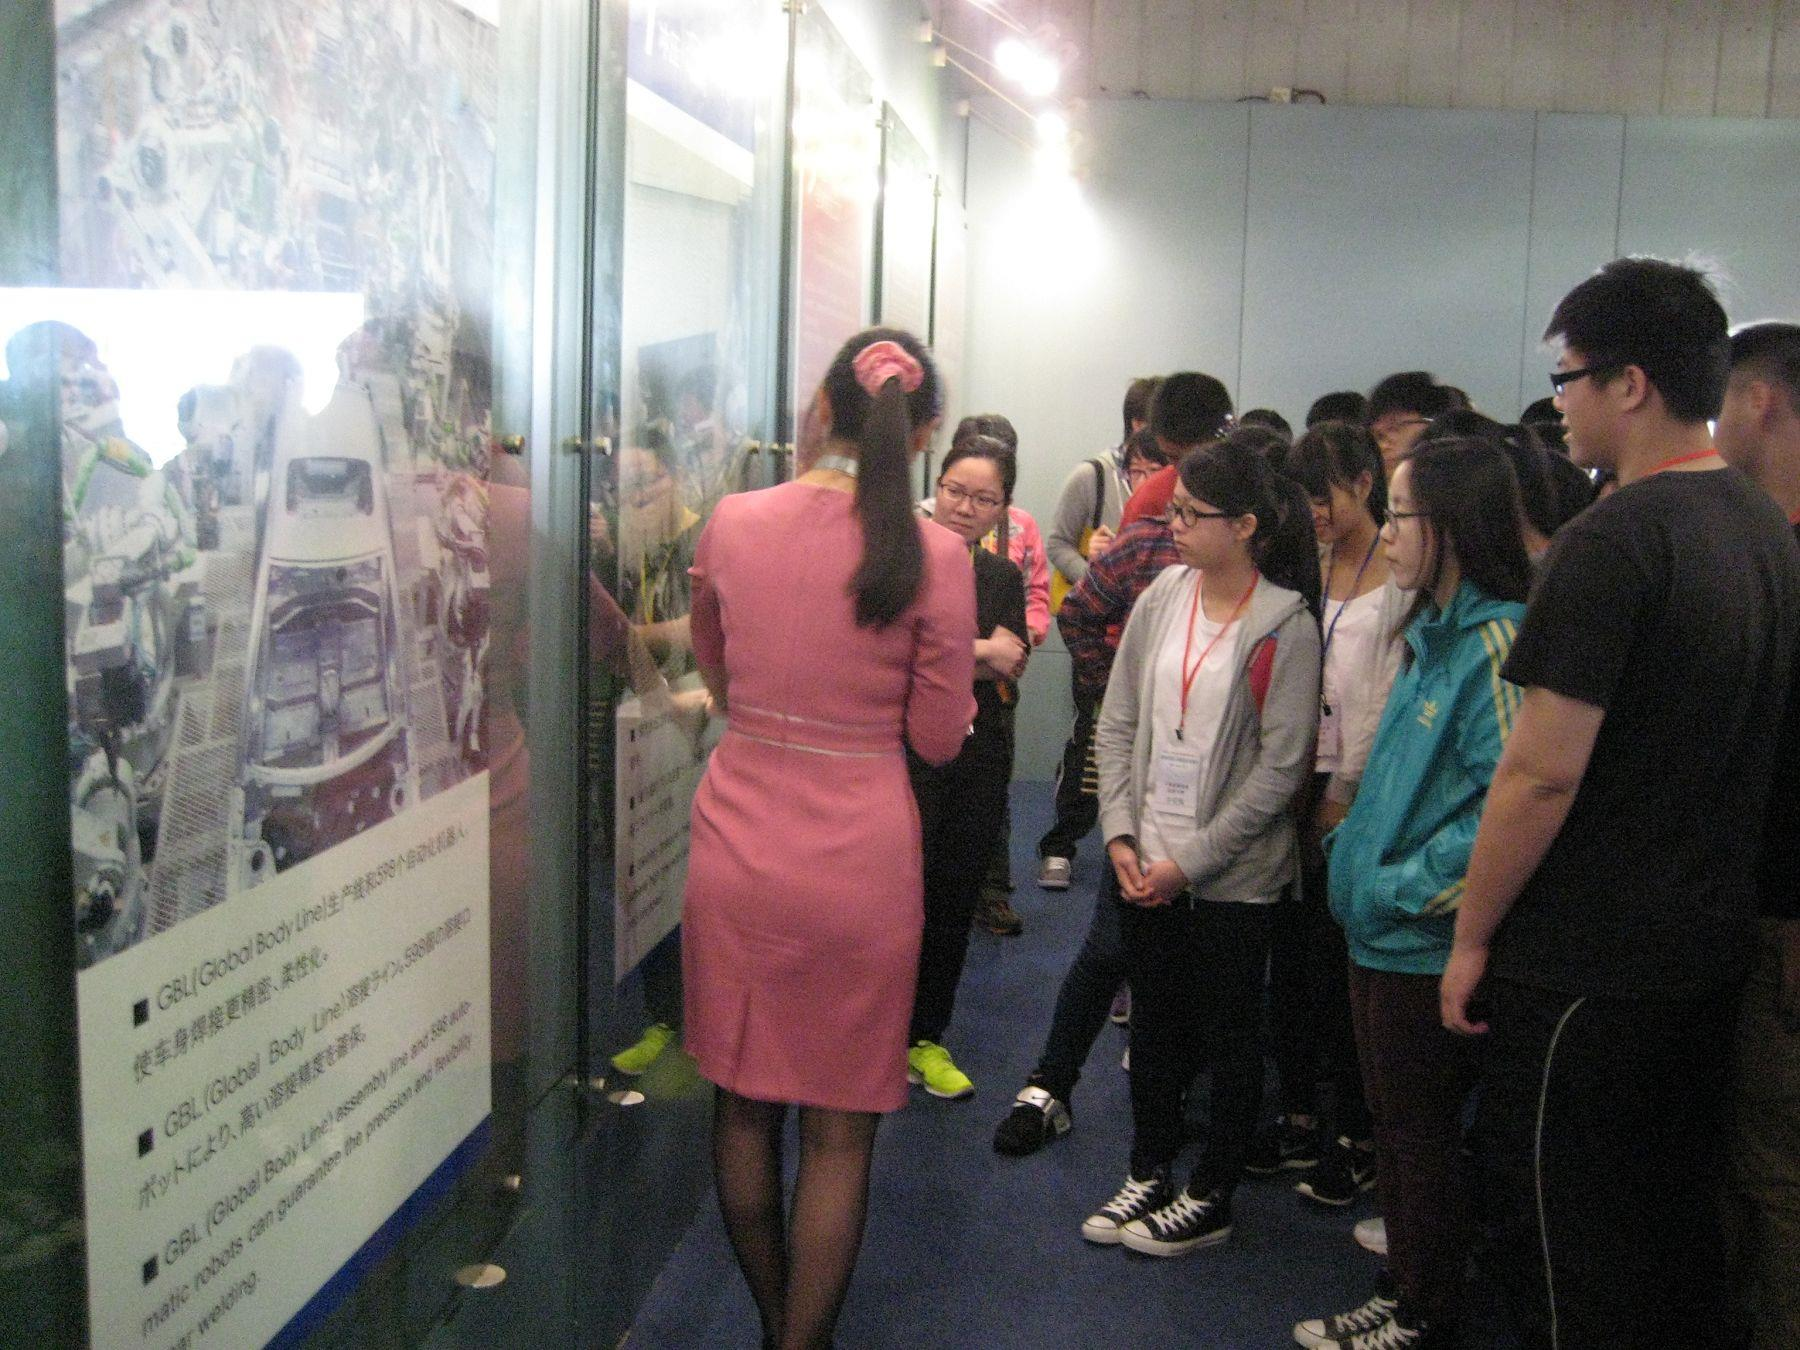 The docent explained the structure of the car to students.